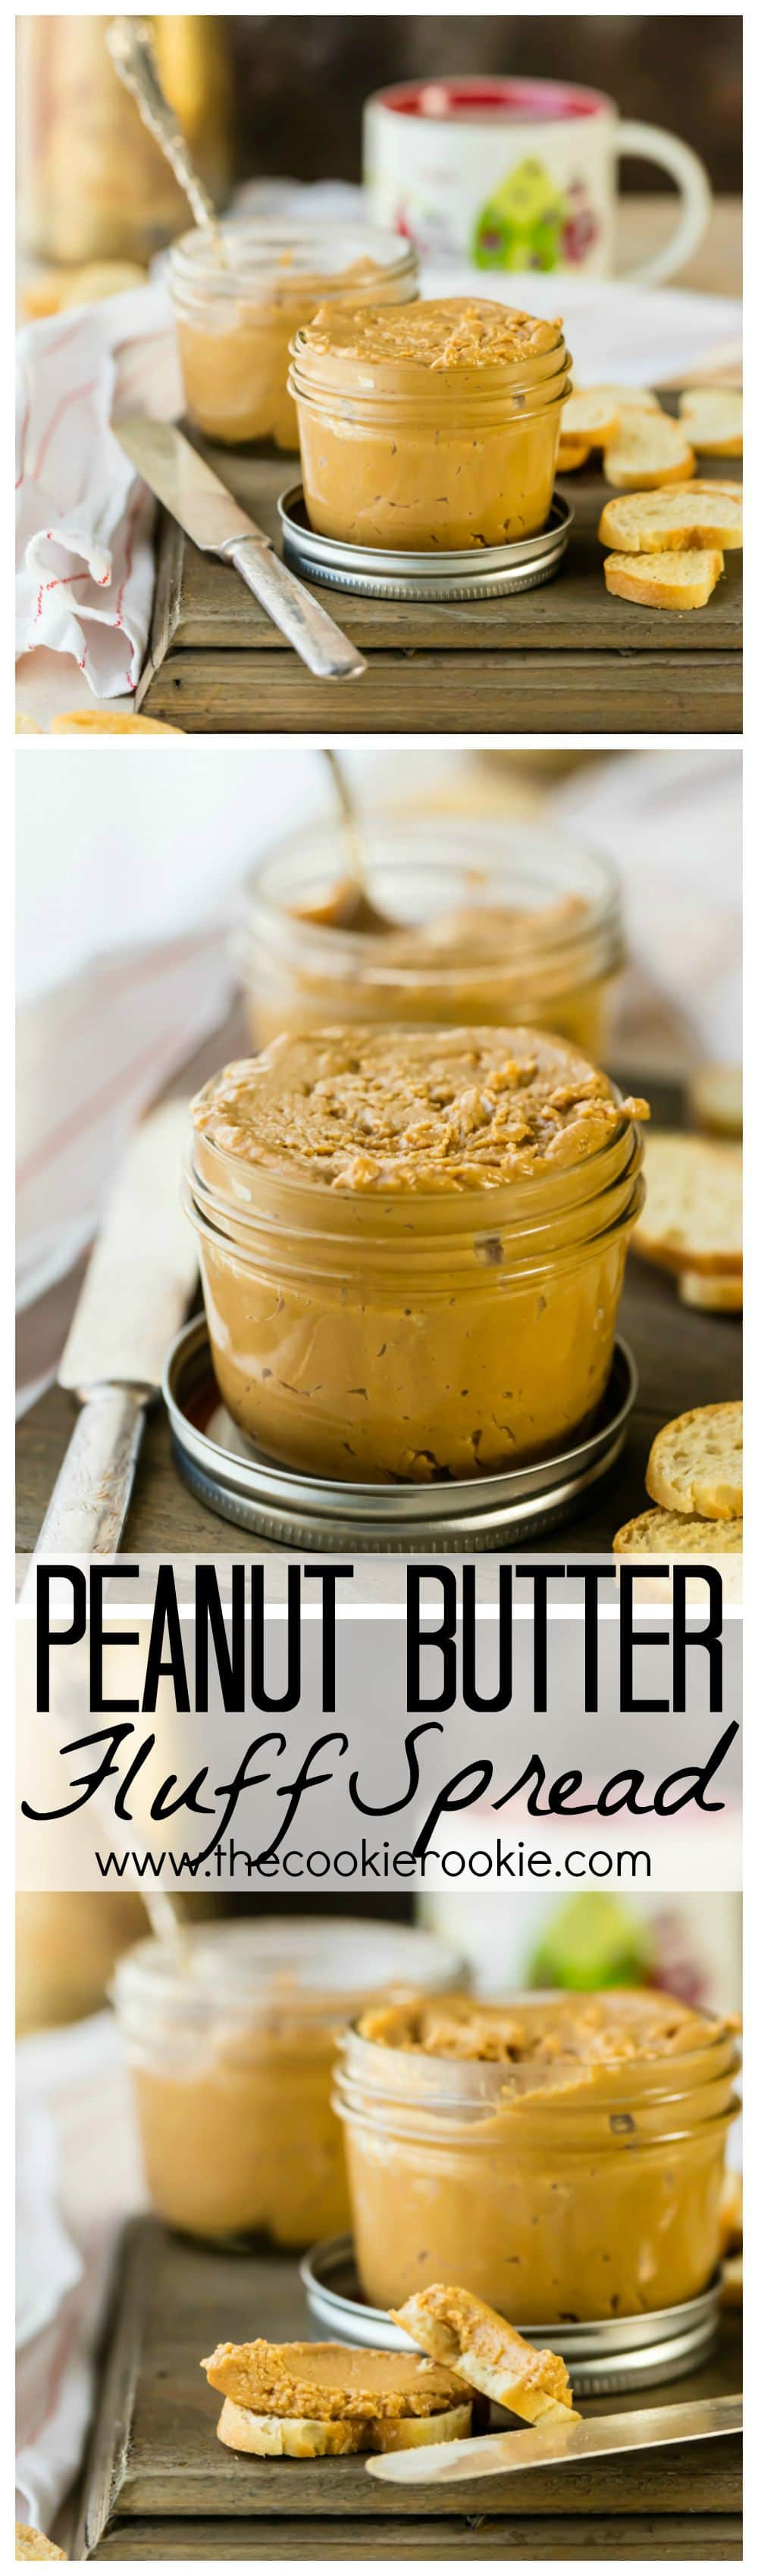 Peanut Butter Fluff Spread, ALL you need in life! Peanut Butter, Marshmallow Fluff, and Molasses come together to create this SUPER EASY and heavenly spread!